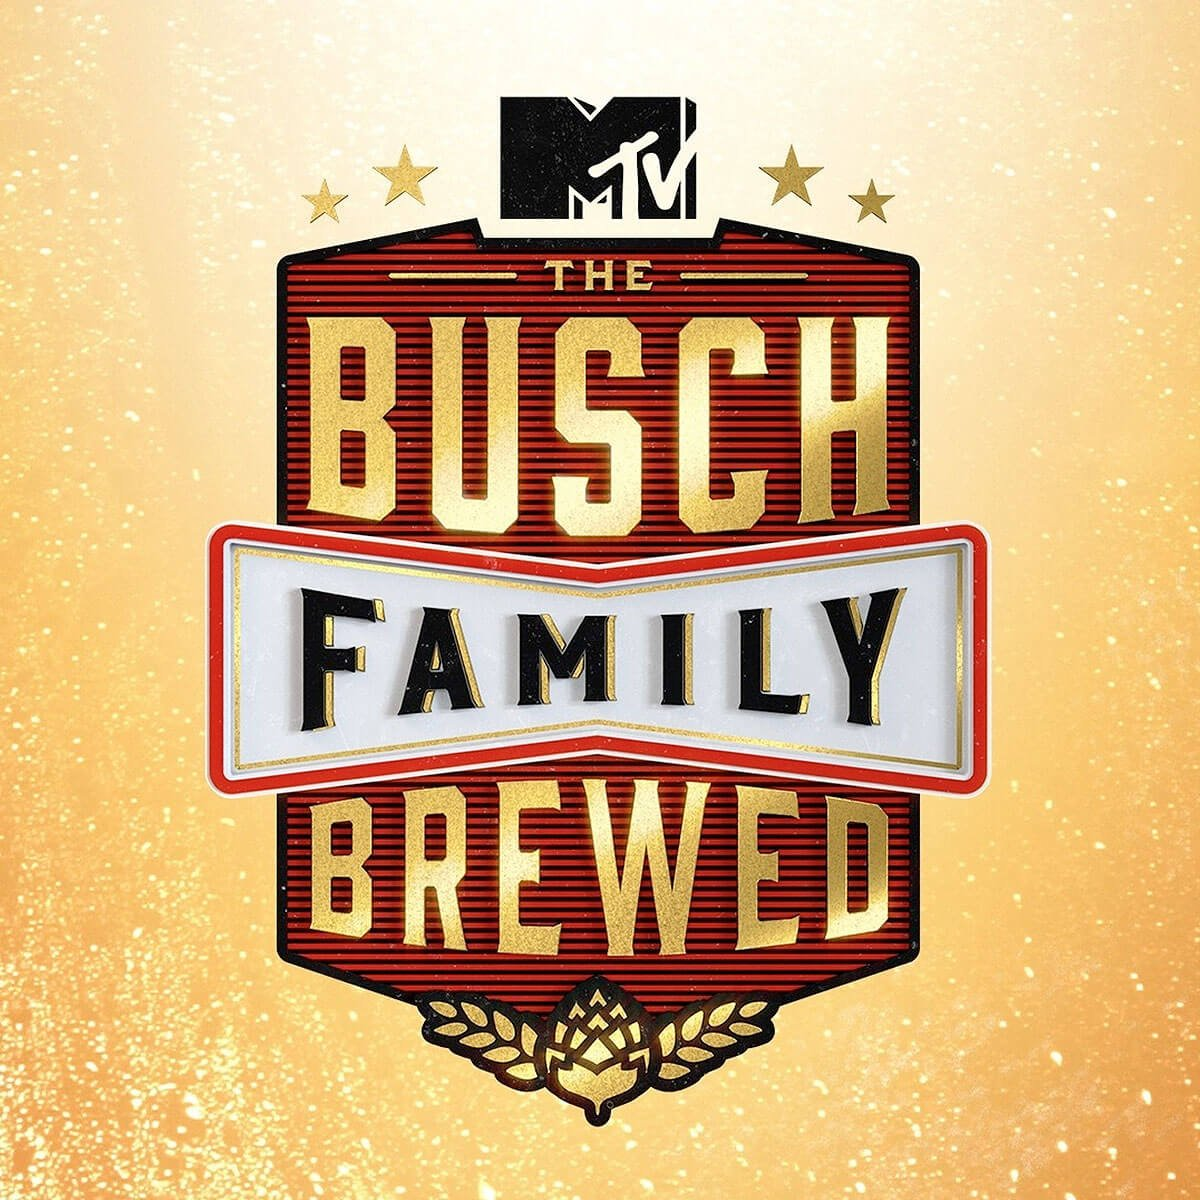 A new MTV reality show, The Busch Family Brewed, will feature Billy Busch, the great-grandson of Anheuser-Busch founder Adolphus Busch, and his family.